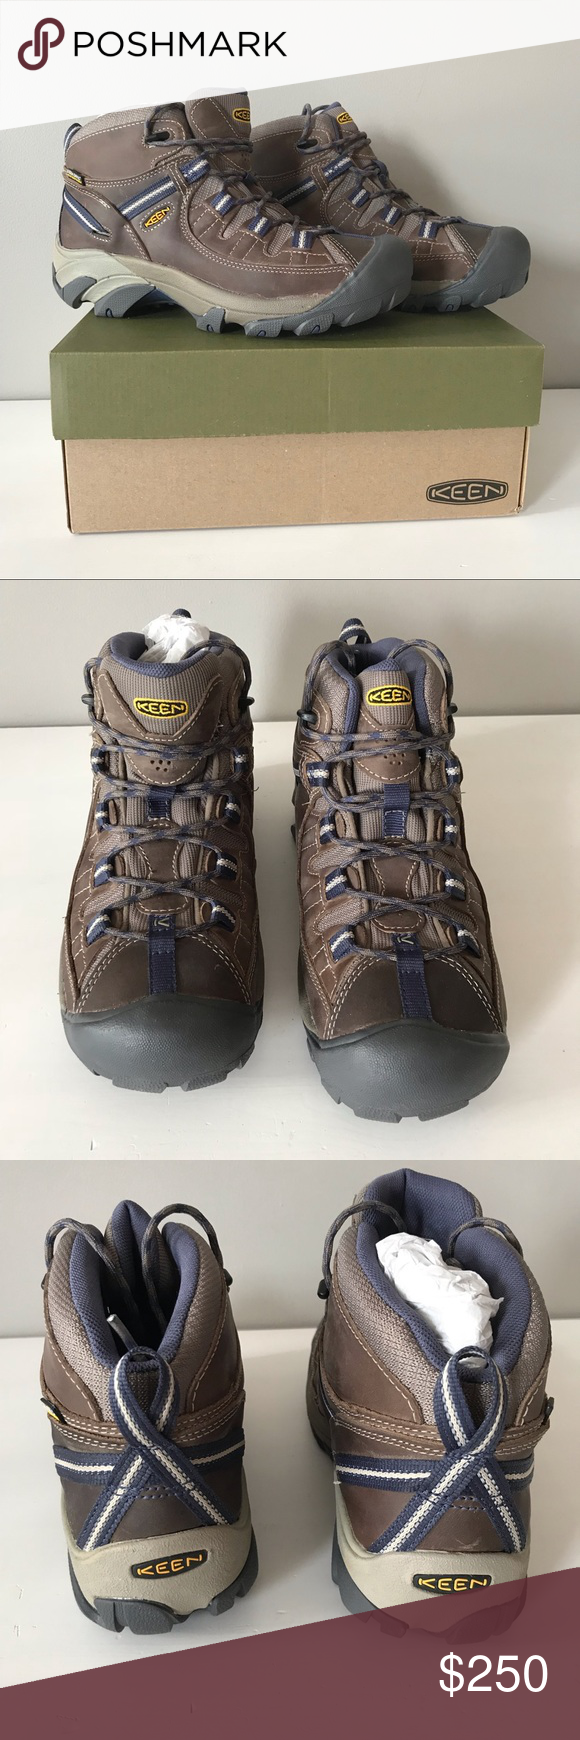 4ab763e1dfa6 Keen NEW Targhee II Waterproof mid hiking boot 9.5 Keen Targhee II mid  waterproof shoes size 9.5 women Goat brown Crown blue Brown leather with  blue accents ...